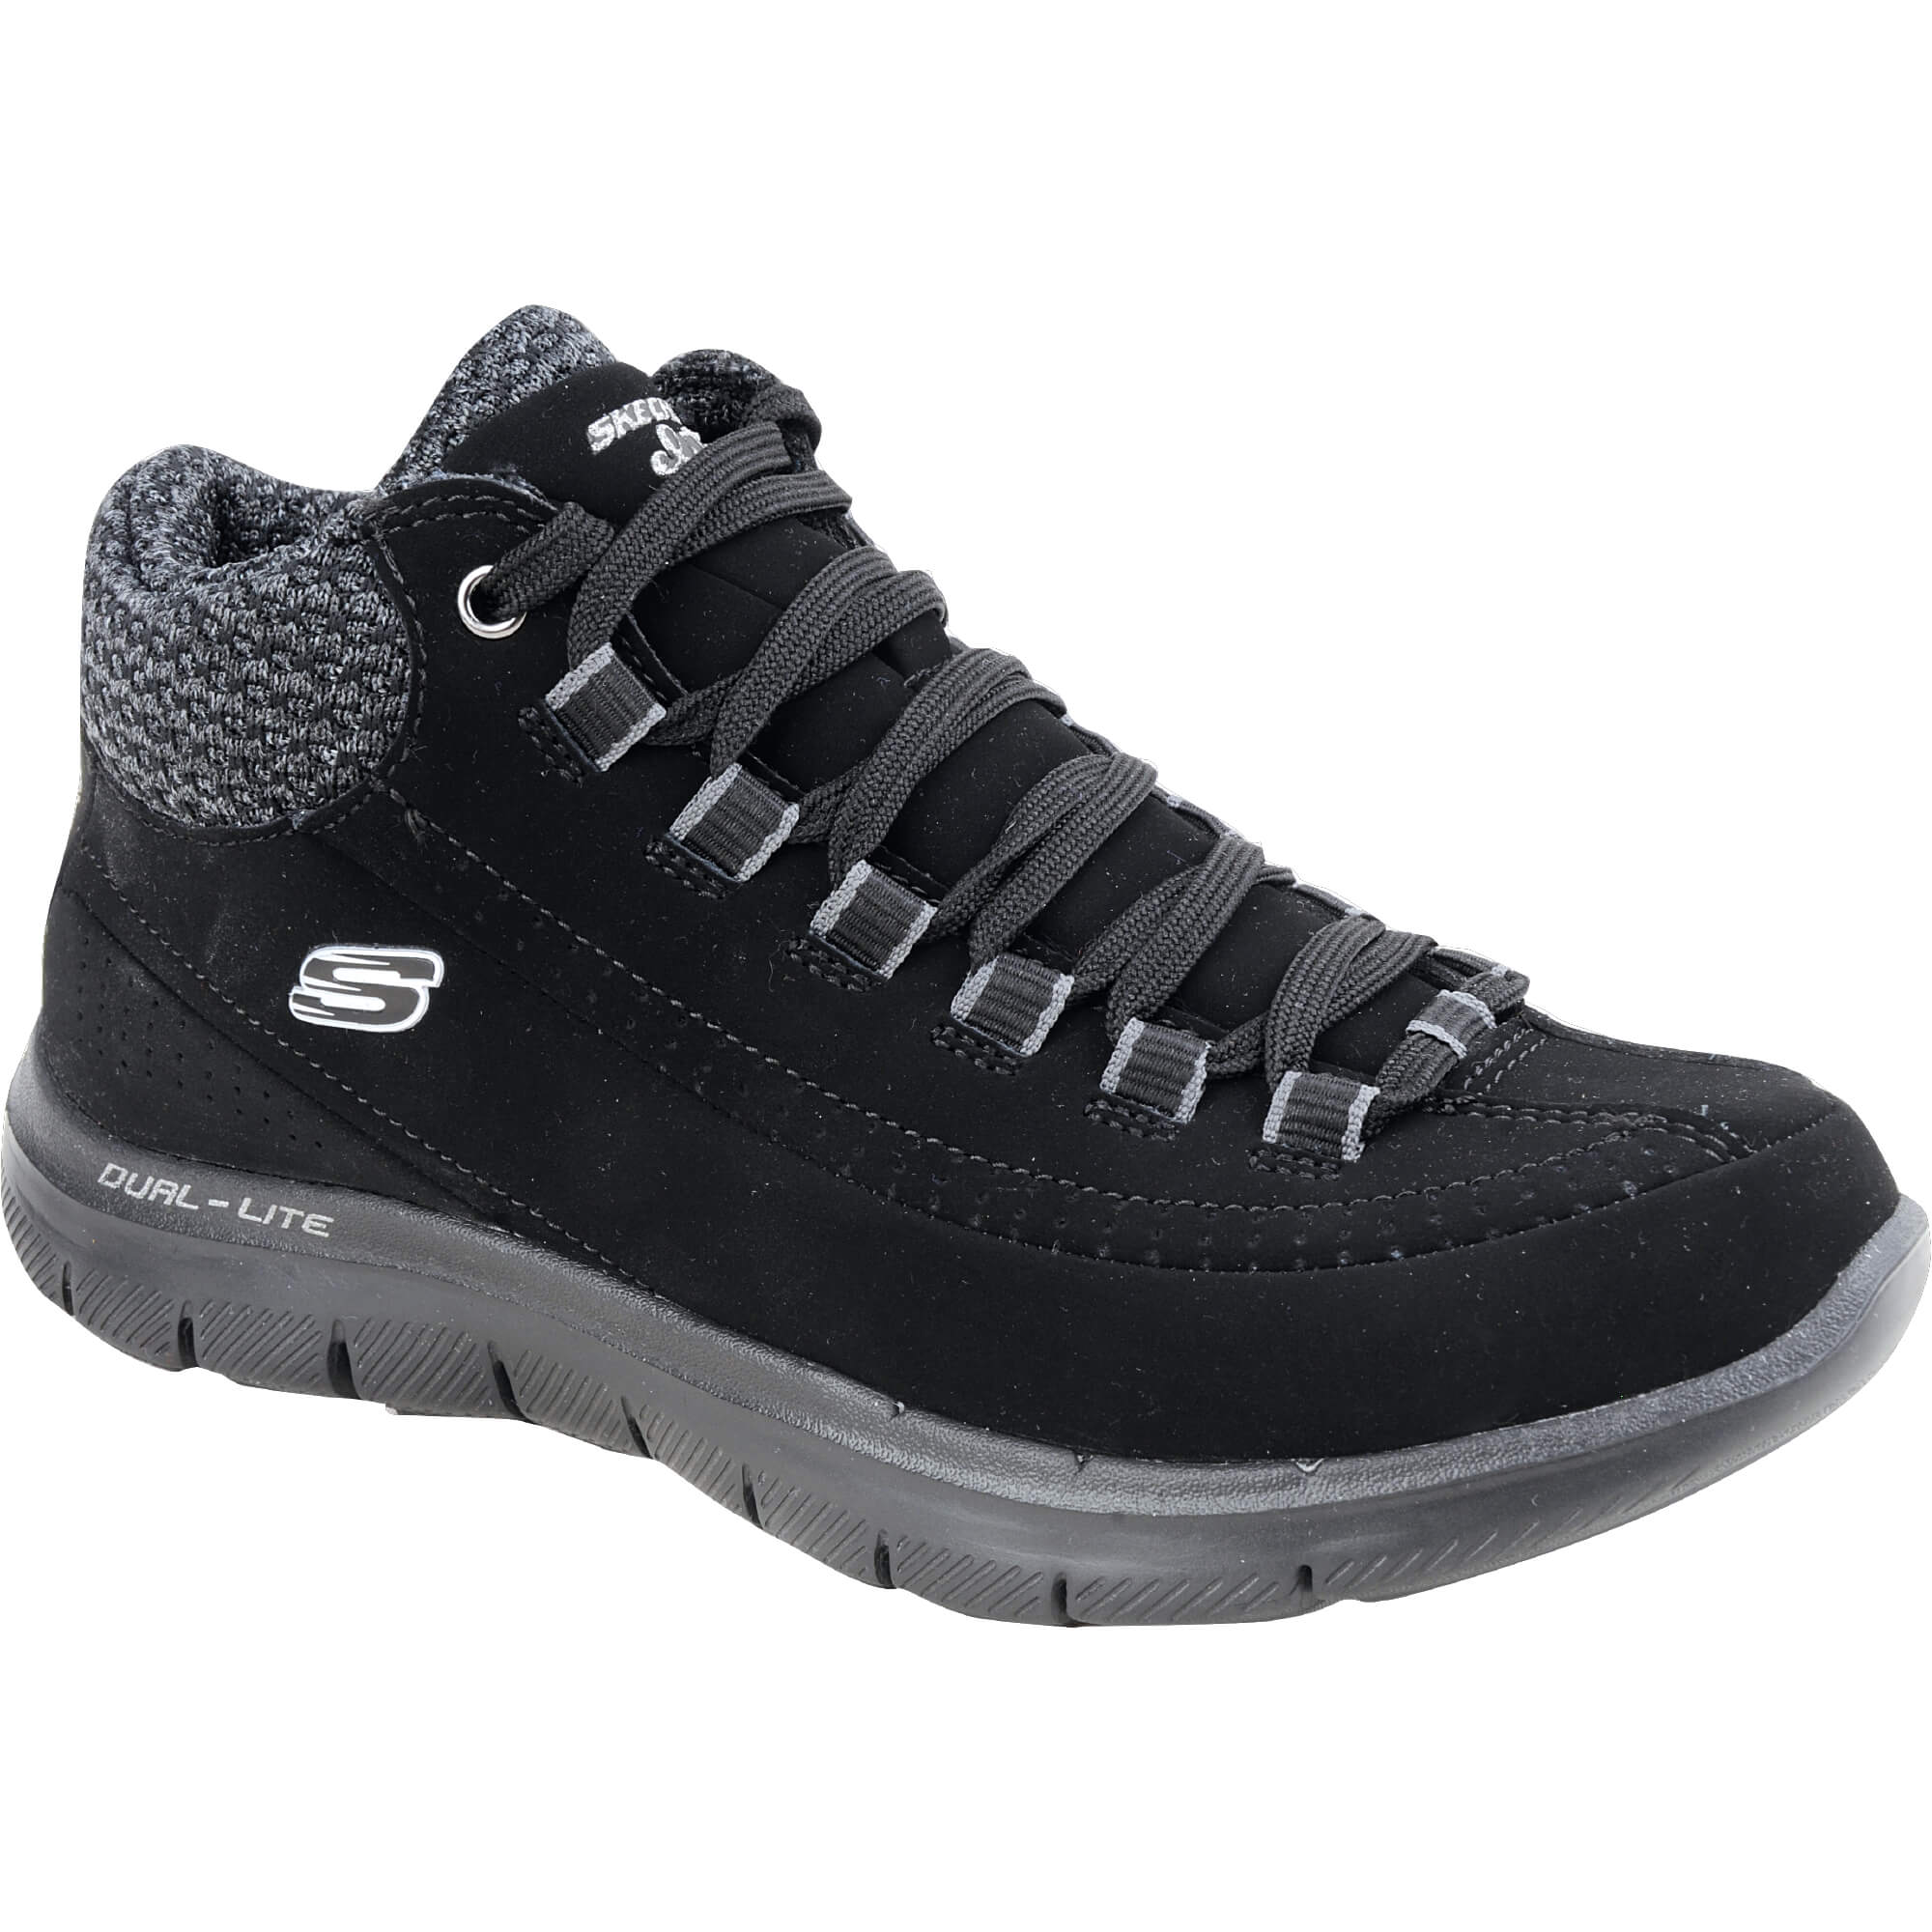 Skechers Flex Appeal 2.0, vel. 38